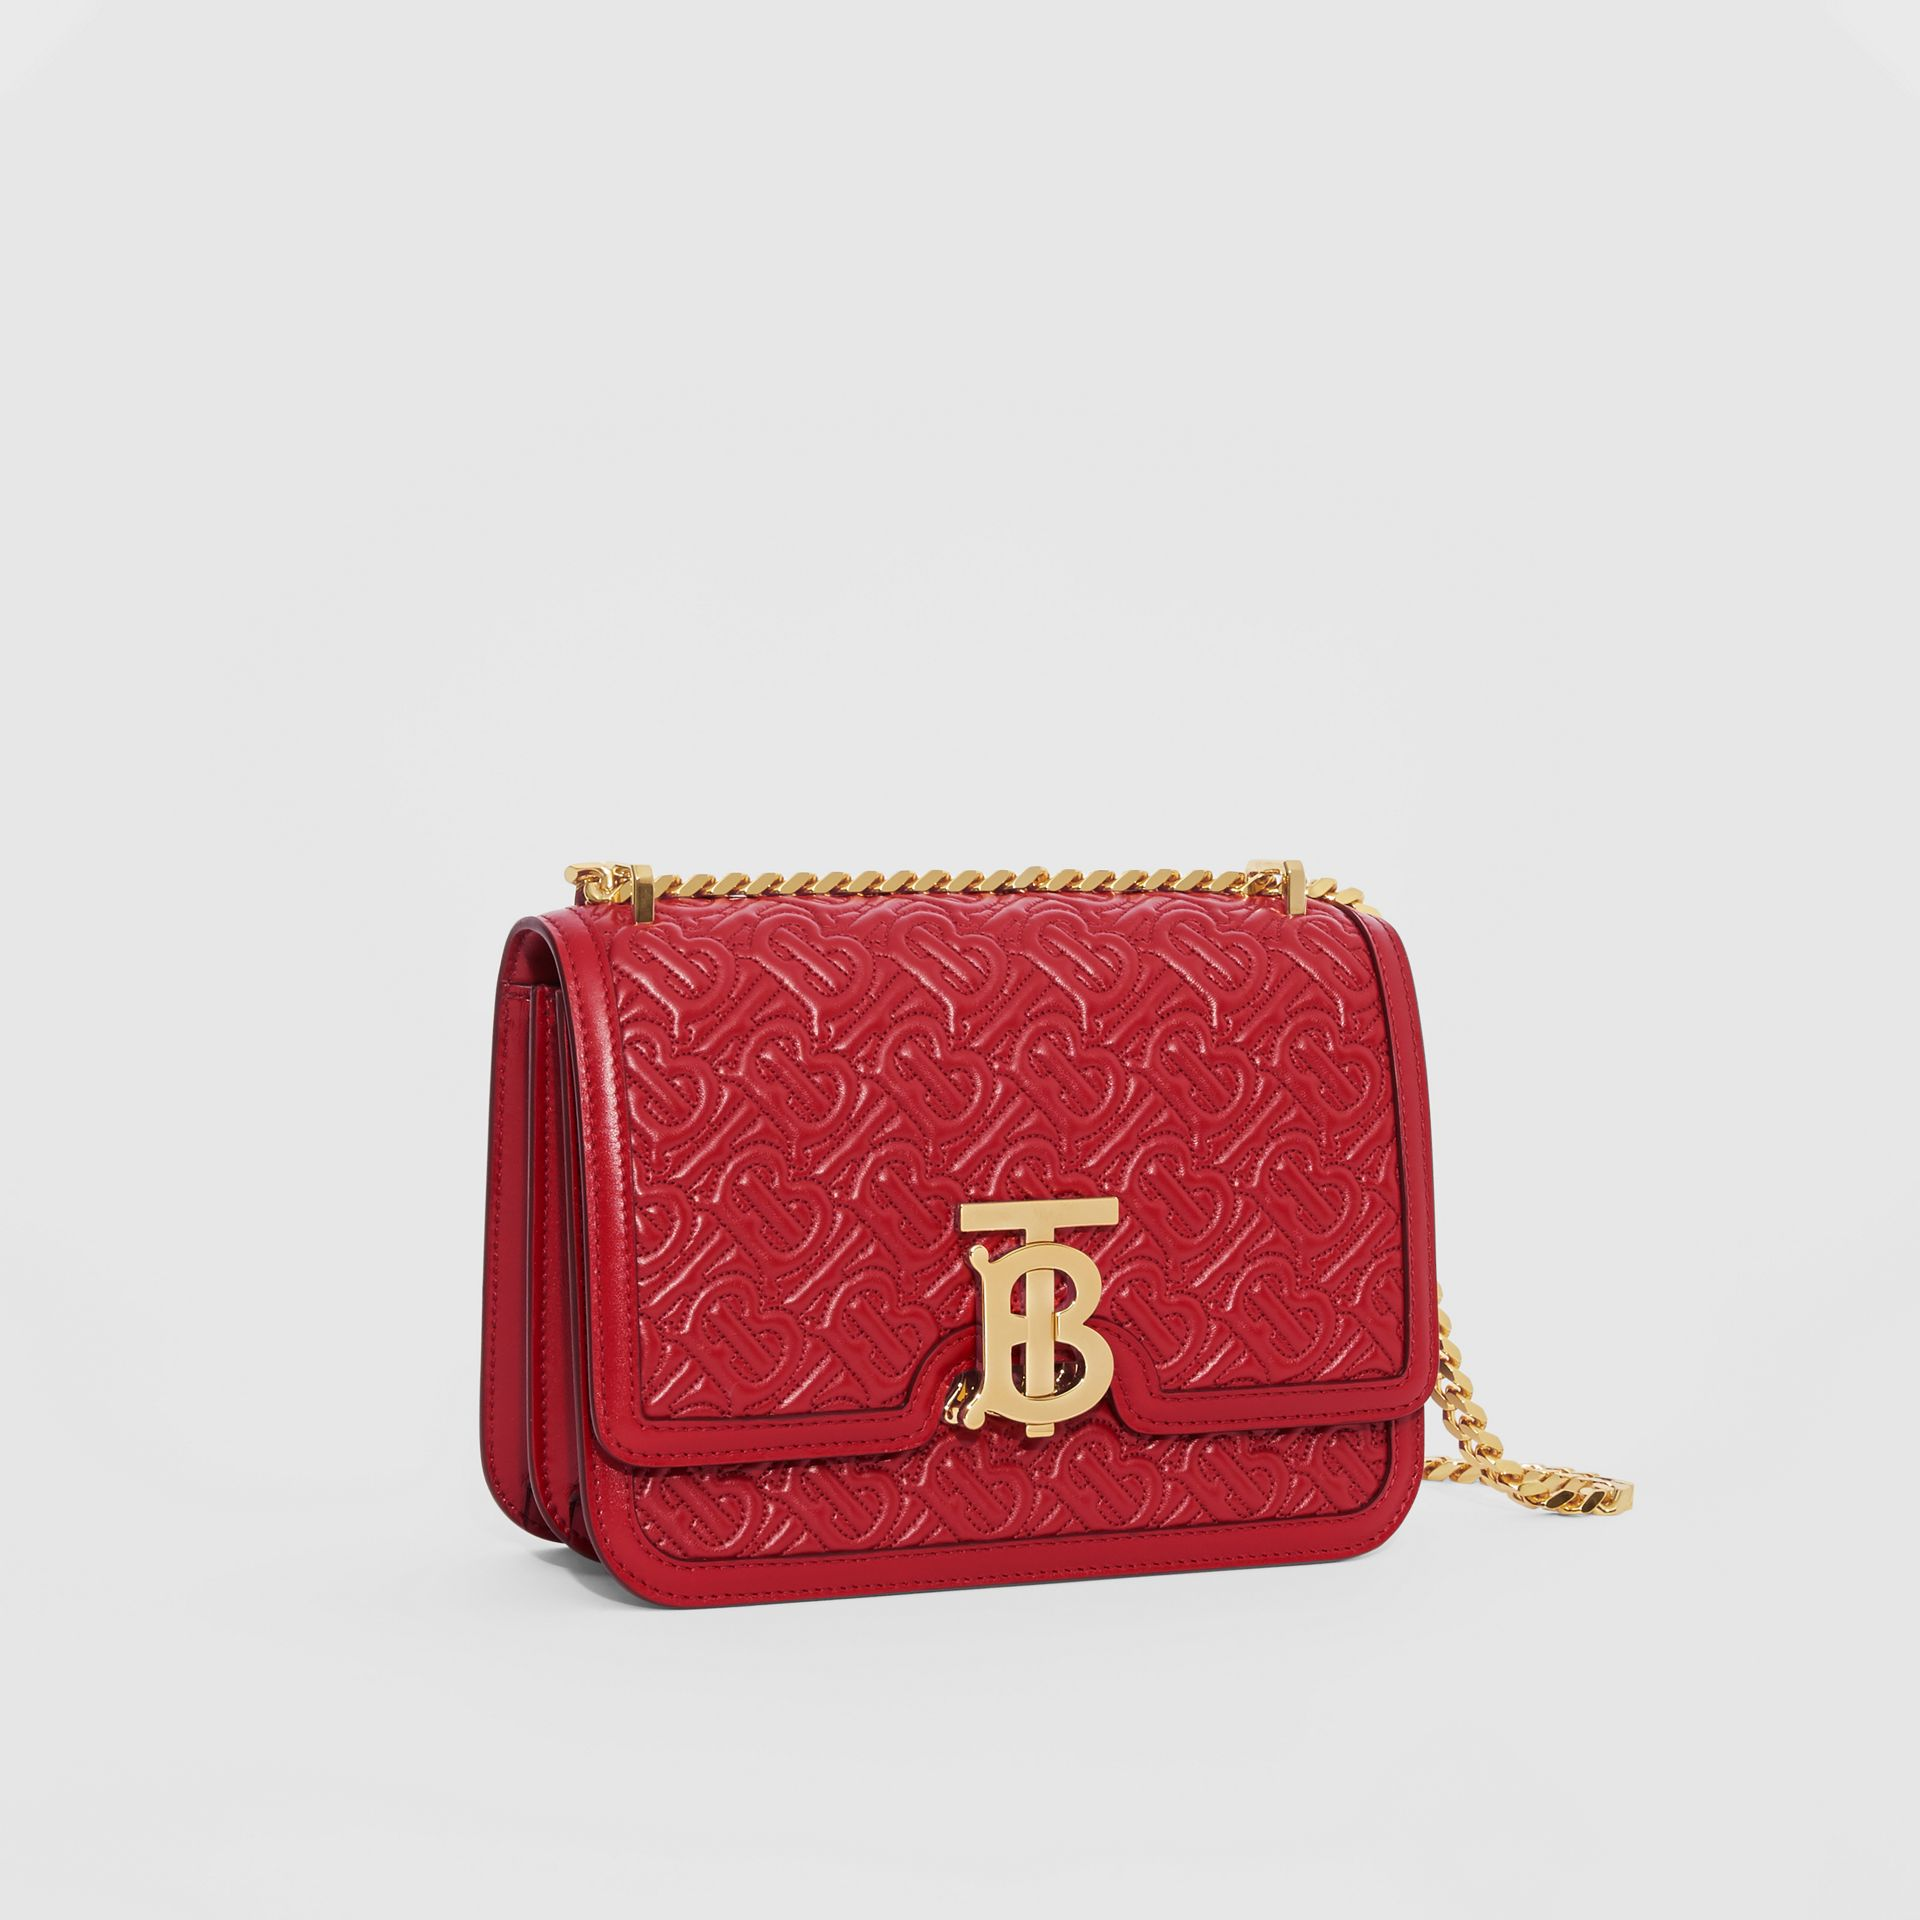 Small Quilted Monogram Lambskin TB Bag in Dark Carmine - Women | Burberry - gallery image 6